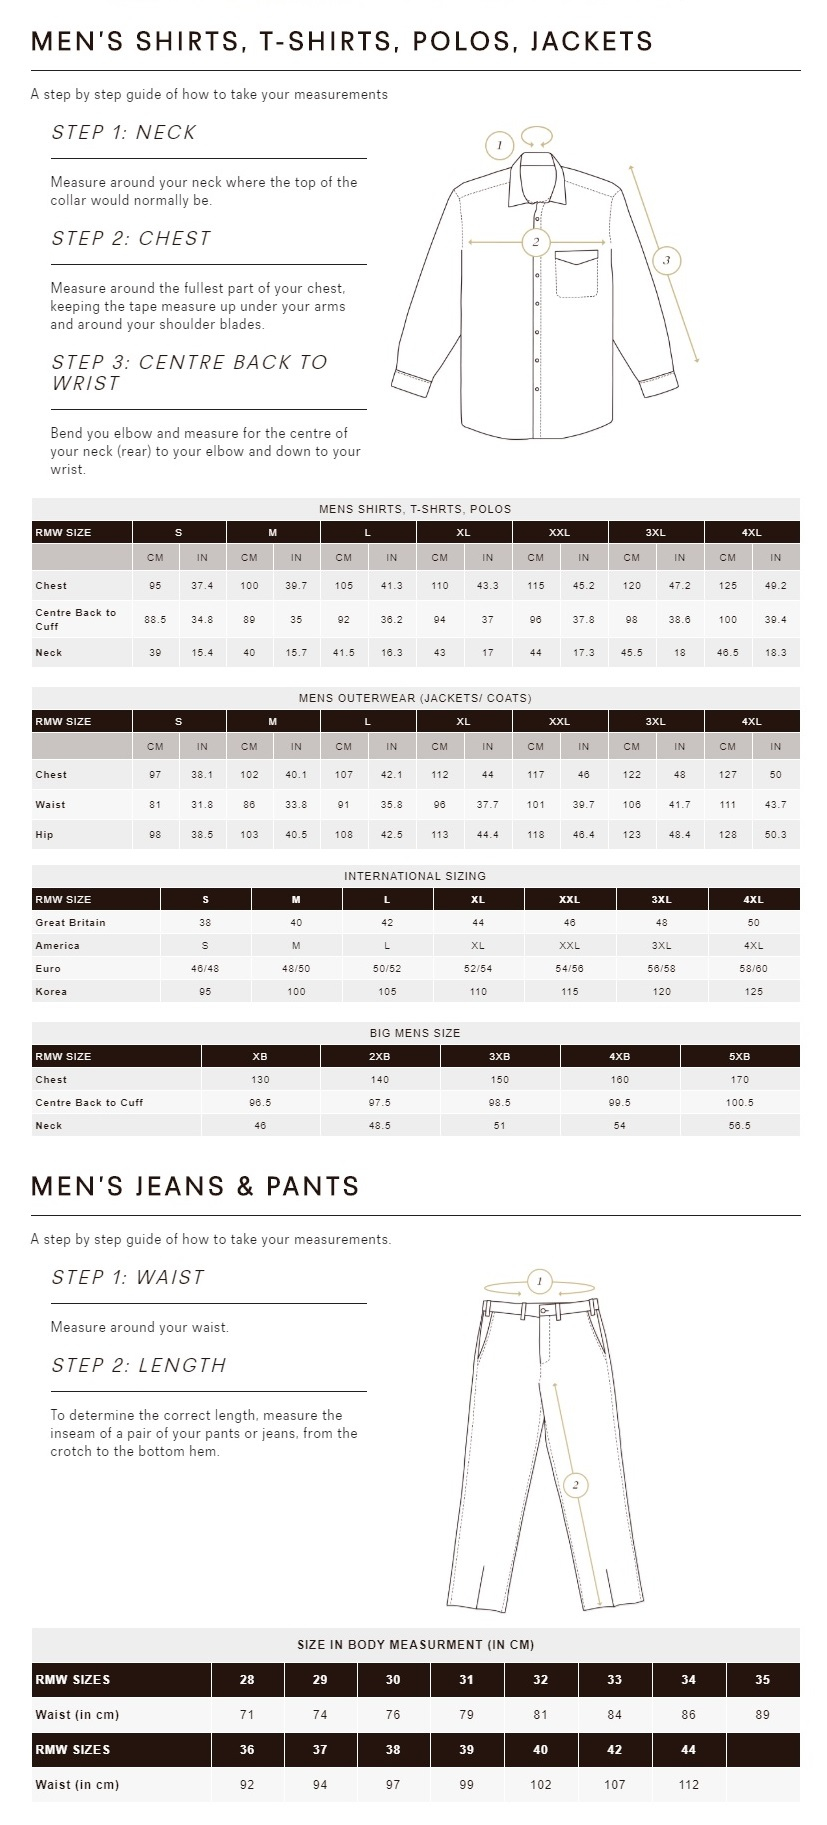 RM Williams - Men's Clothing Size Guide